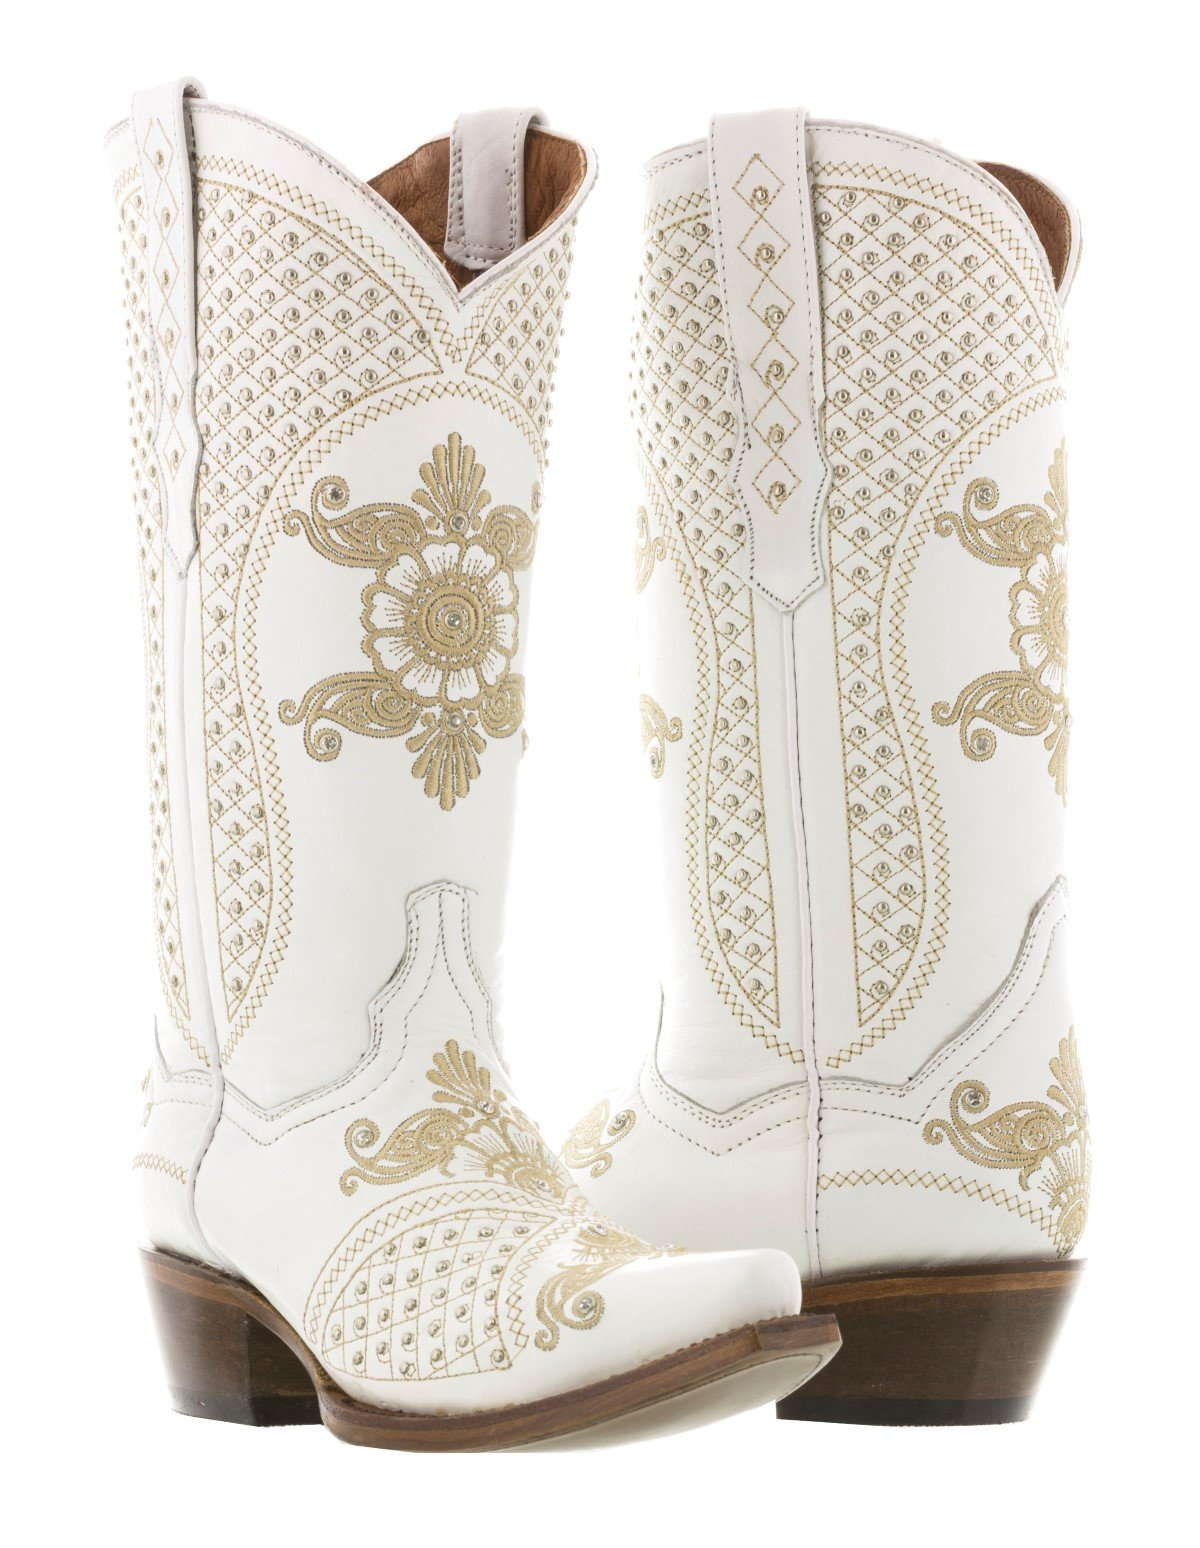 Cowboy Professional - Women's White Marfil Wedding Studded Cowboy Boots Snip Toe 8 BM